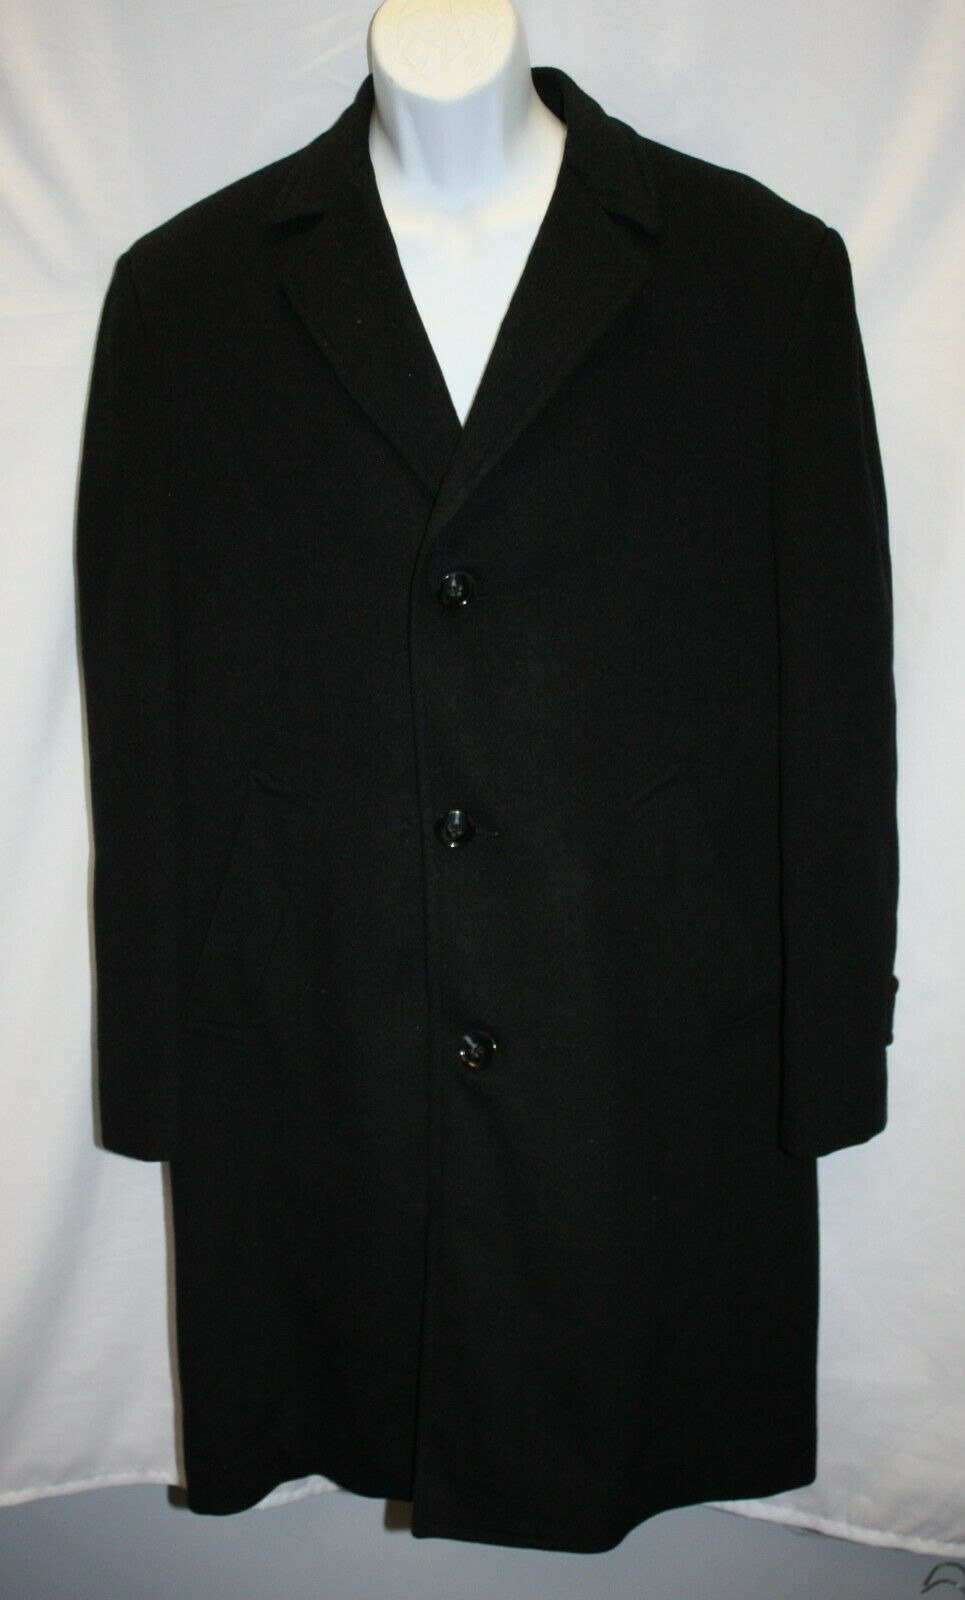 Primary image for Alexandre 100% Cashmere Coat tailor made